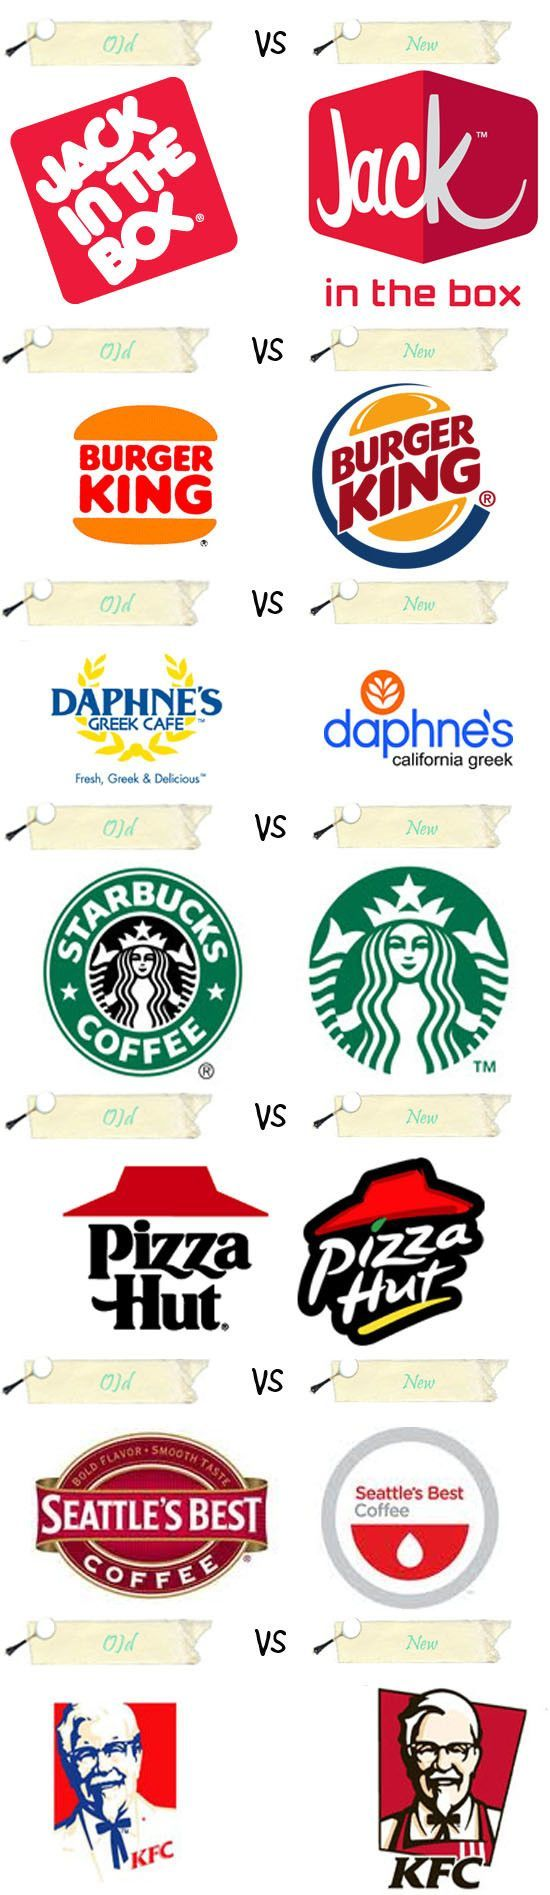 There is value in updating your logo. Check out some popular evolutions of these well known companies.